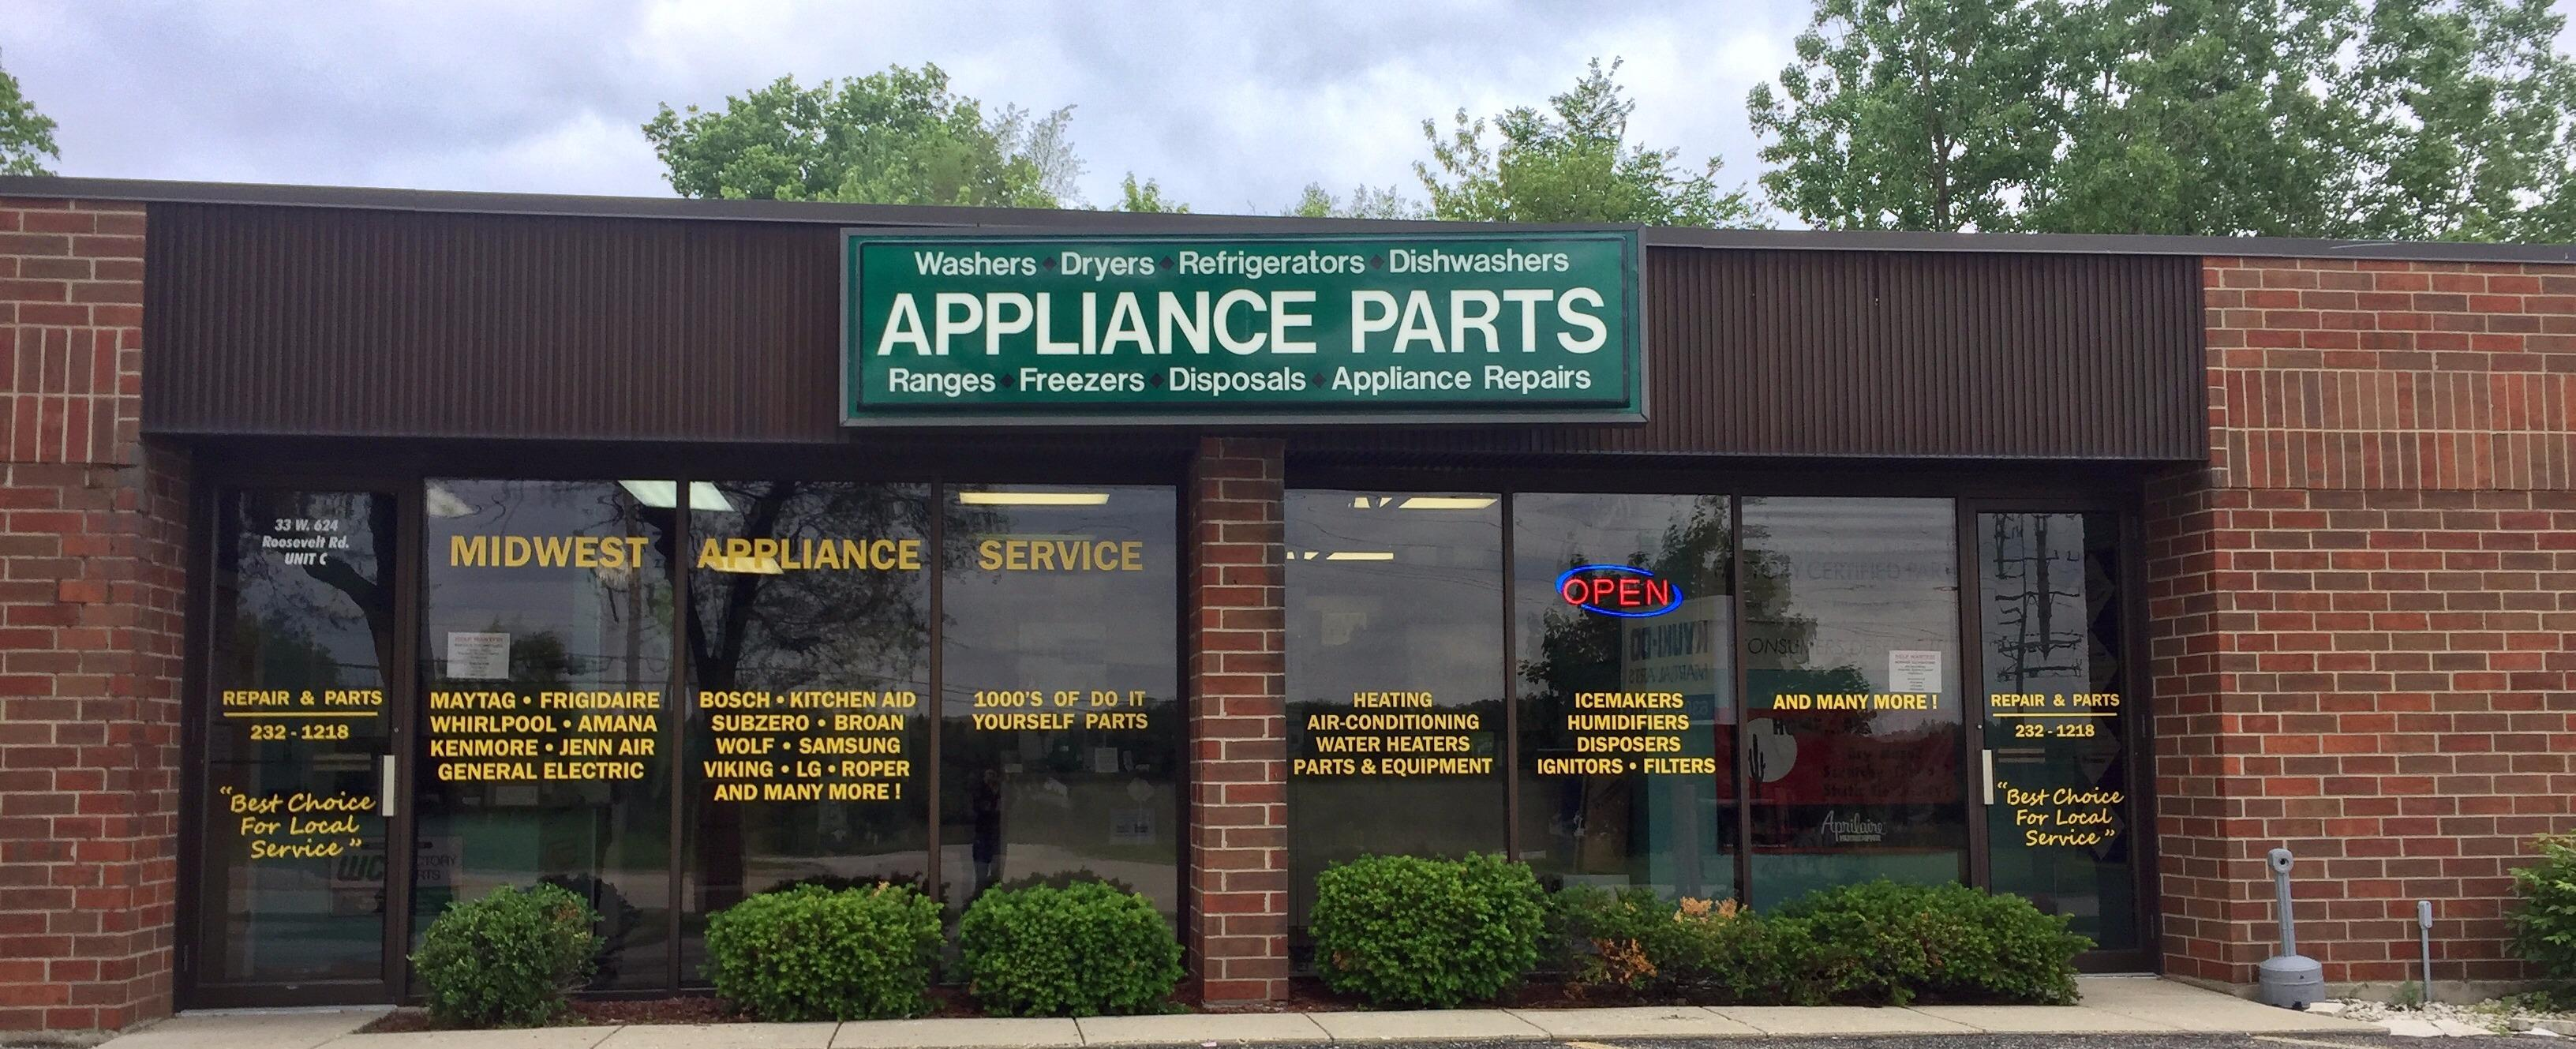 For Midwest Appliance Parts we currently have 1 coupons and 0 deals. Our users can save with our coupons on average about $ Todays best offer is On Sale!. If you can't find a coupon or a deal for you product then sign up for alerts and you will get updates on .